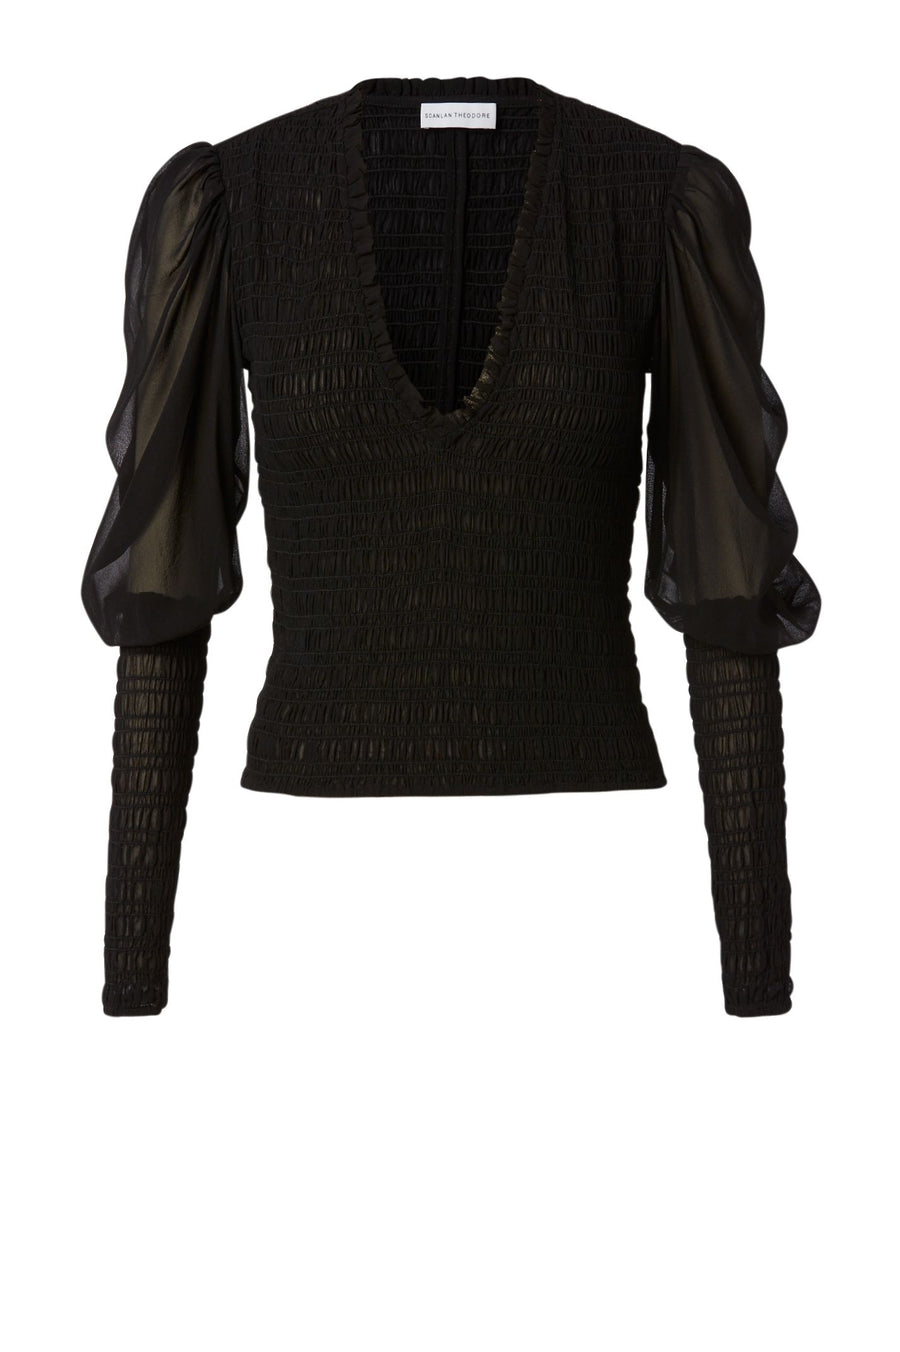 Shirred GGT Blouse Black, Slim Fit, Sheer Sleeves, V Neckline, Blouson Sleeves